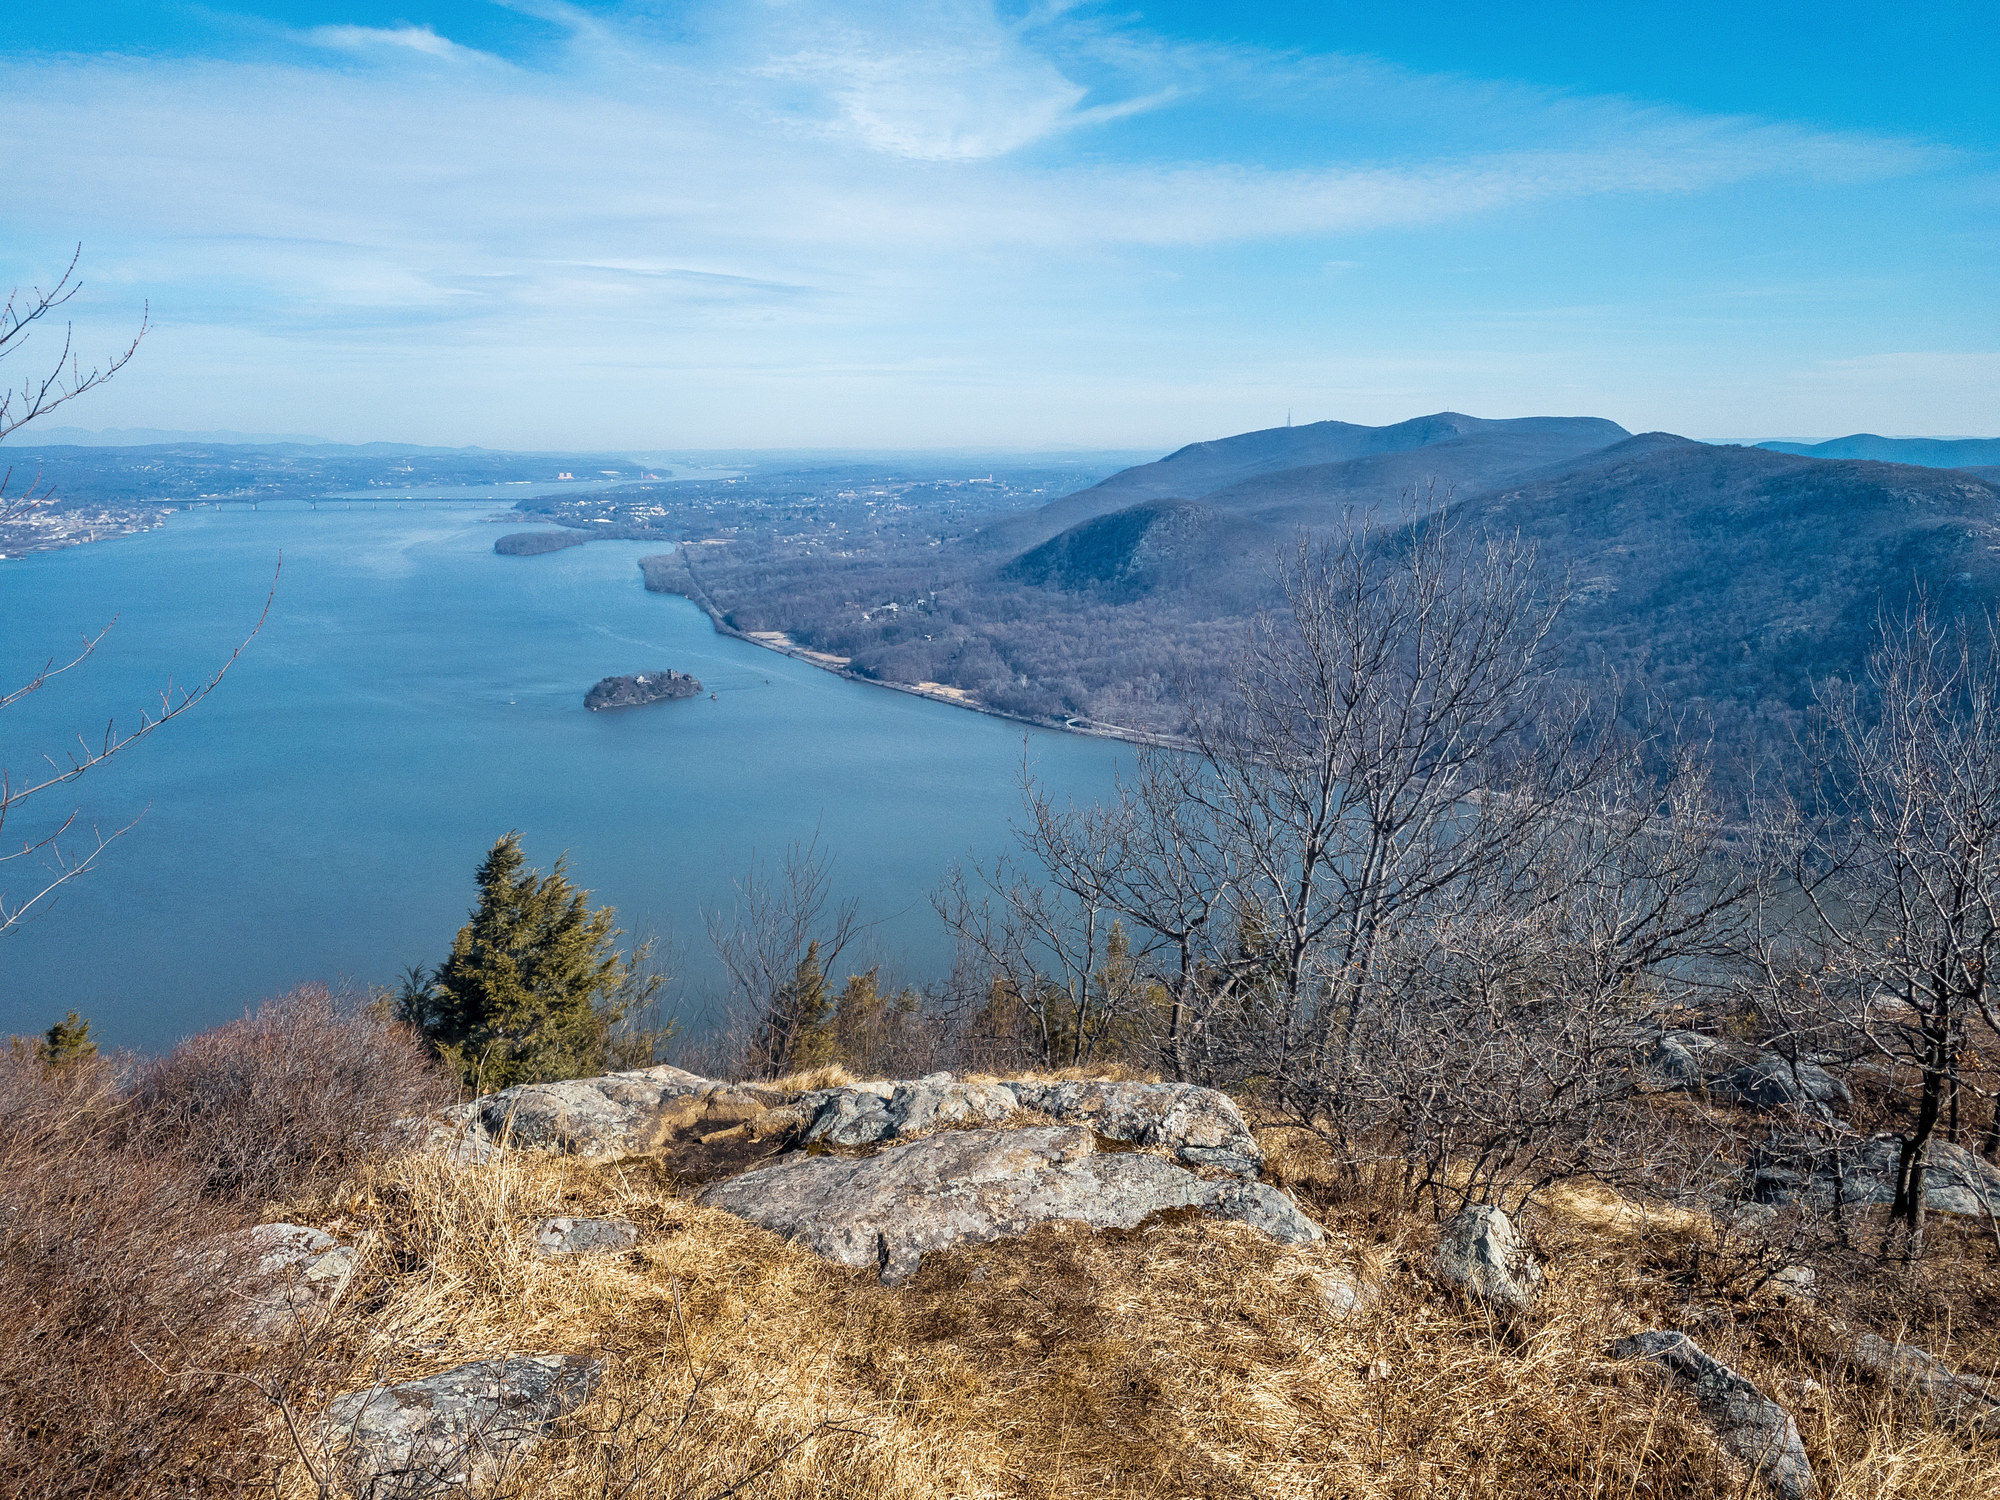 Looking at the Hudson River valley from the rocky top of Storm King Mountain. Mount Beacon and breakneck ridge are across the water.